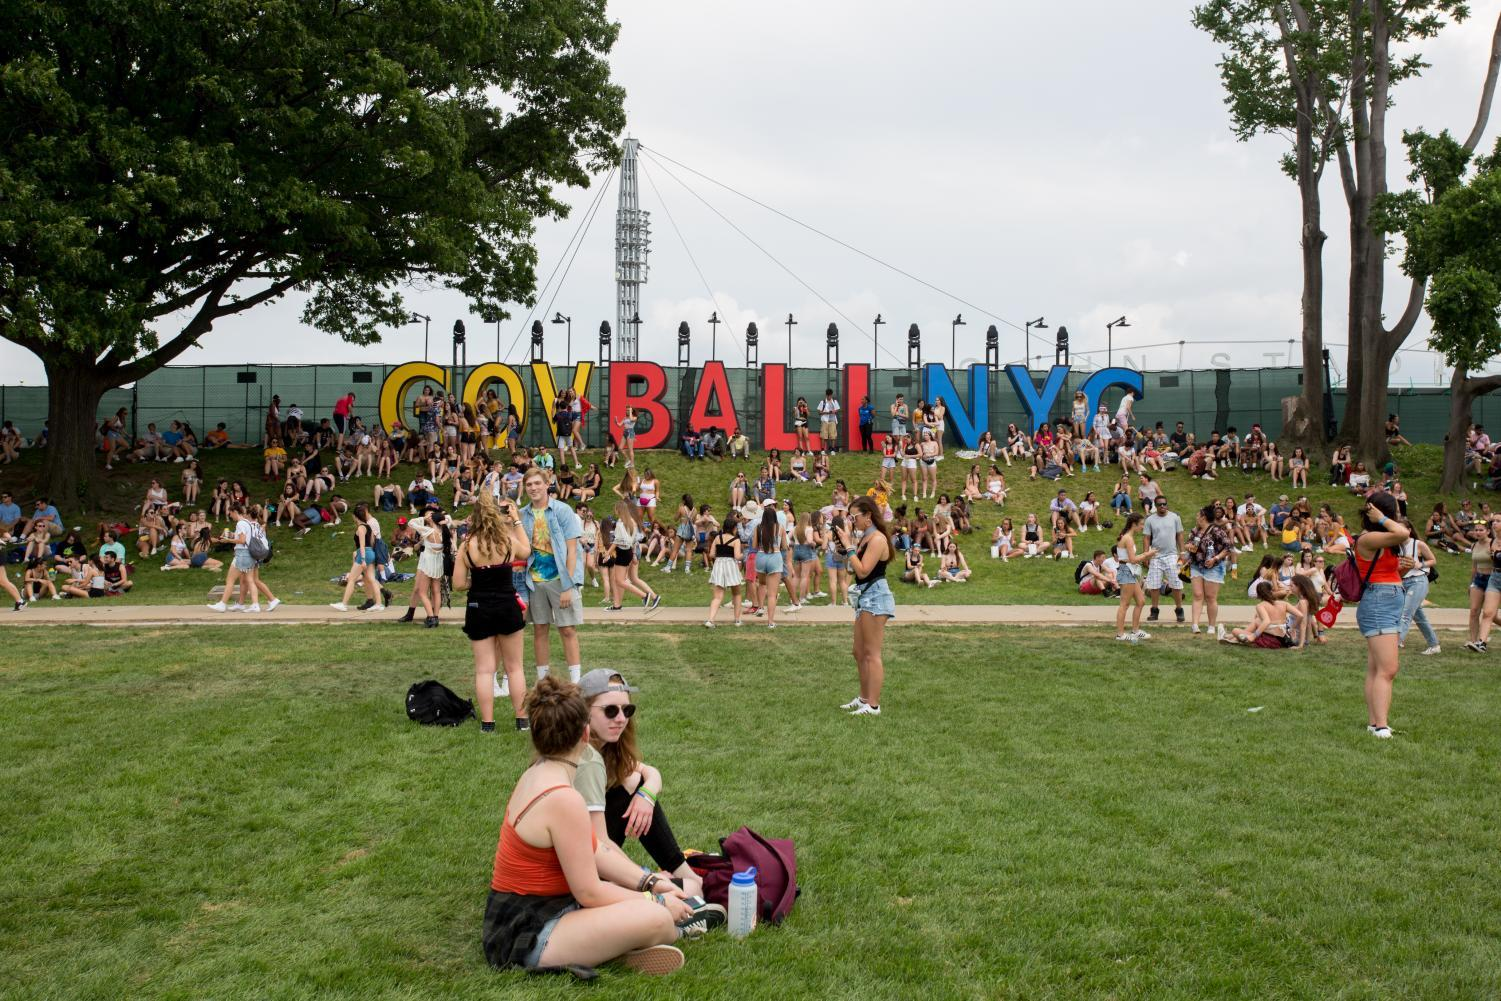 Sign from this year's Governors Ball